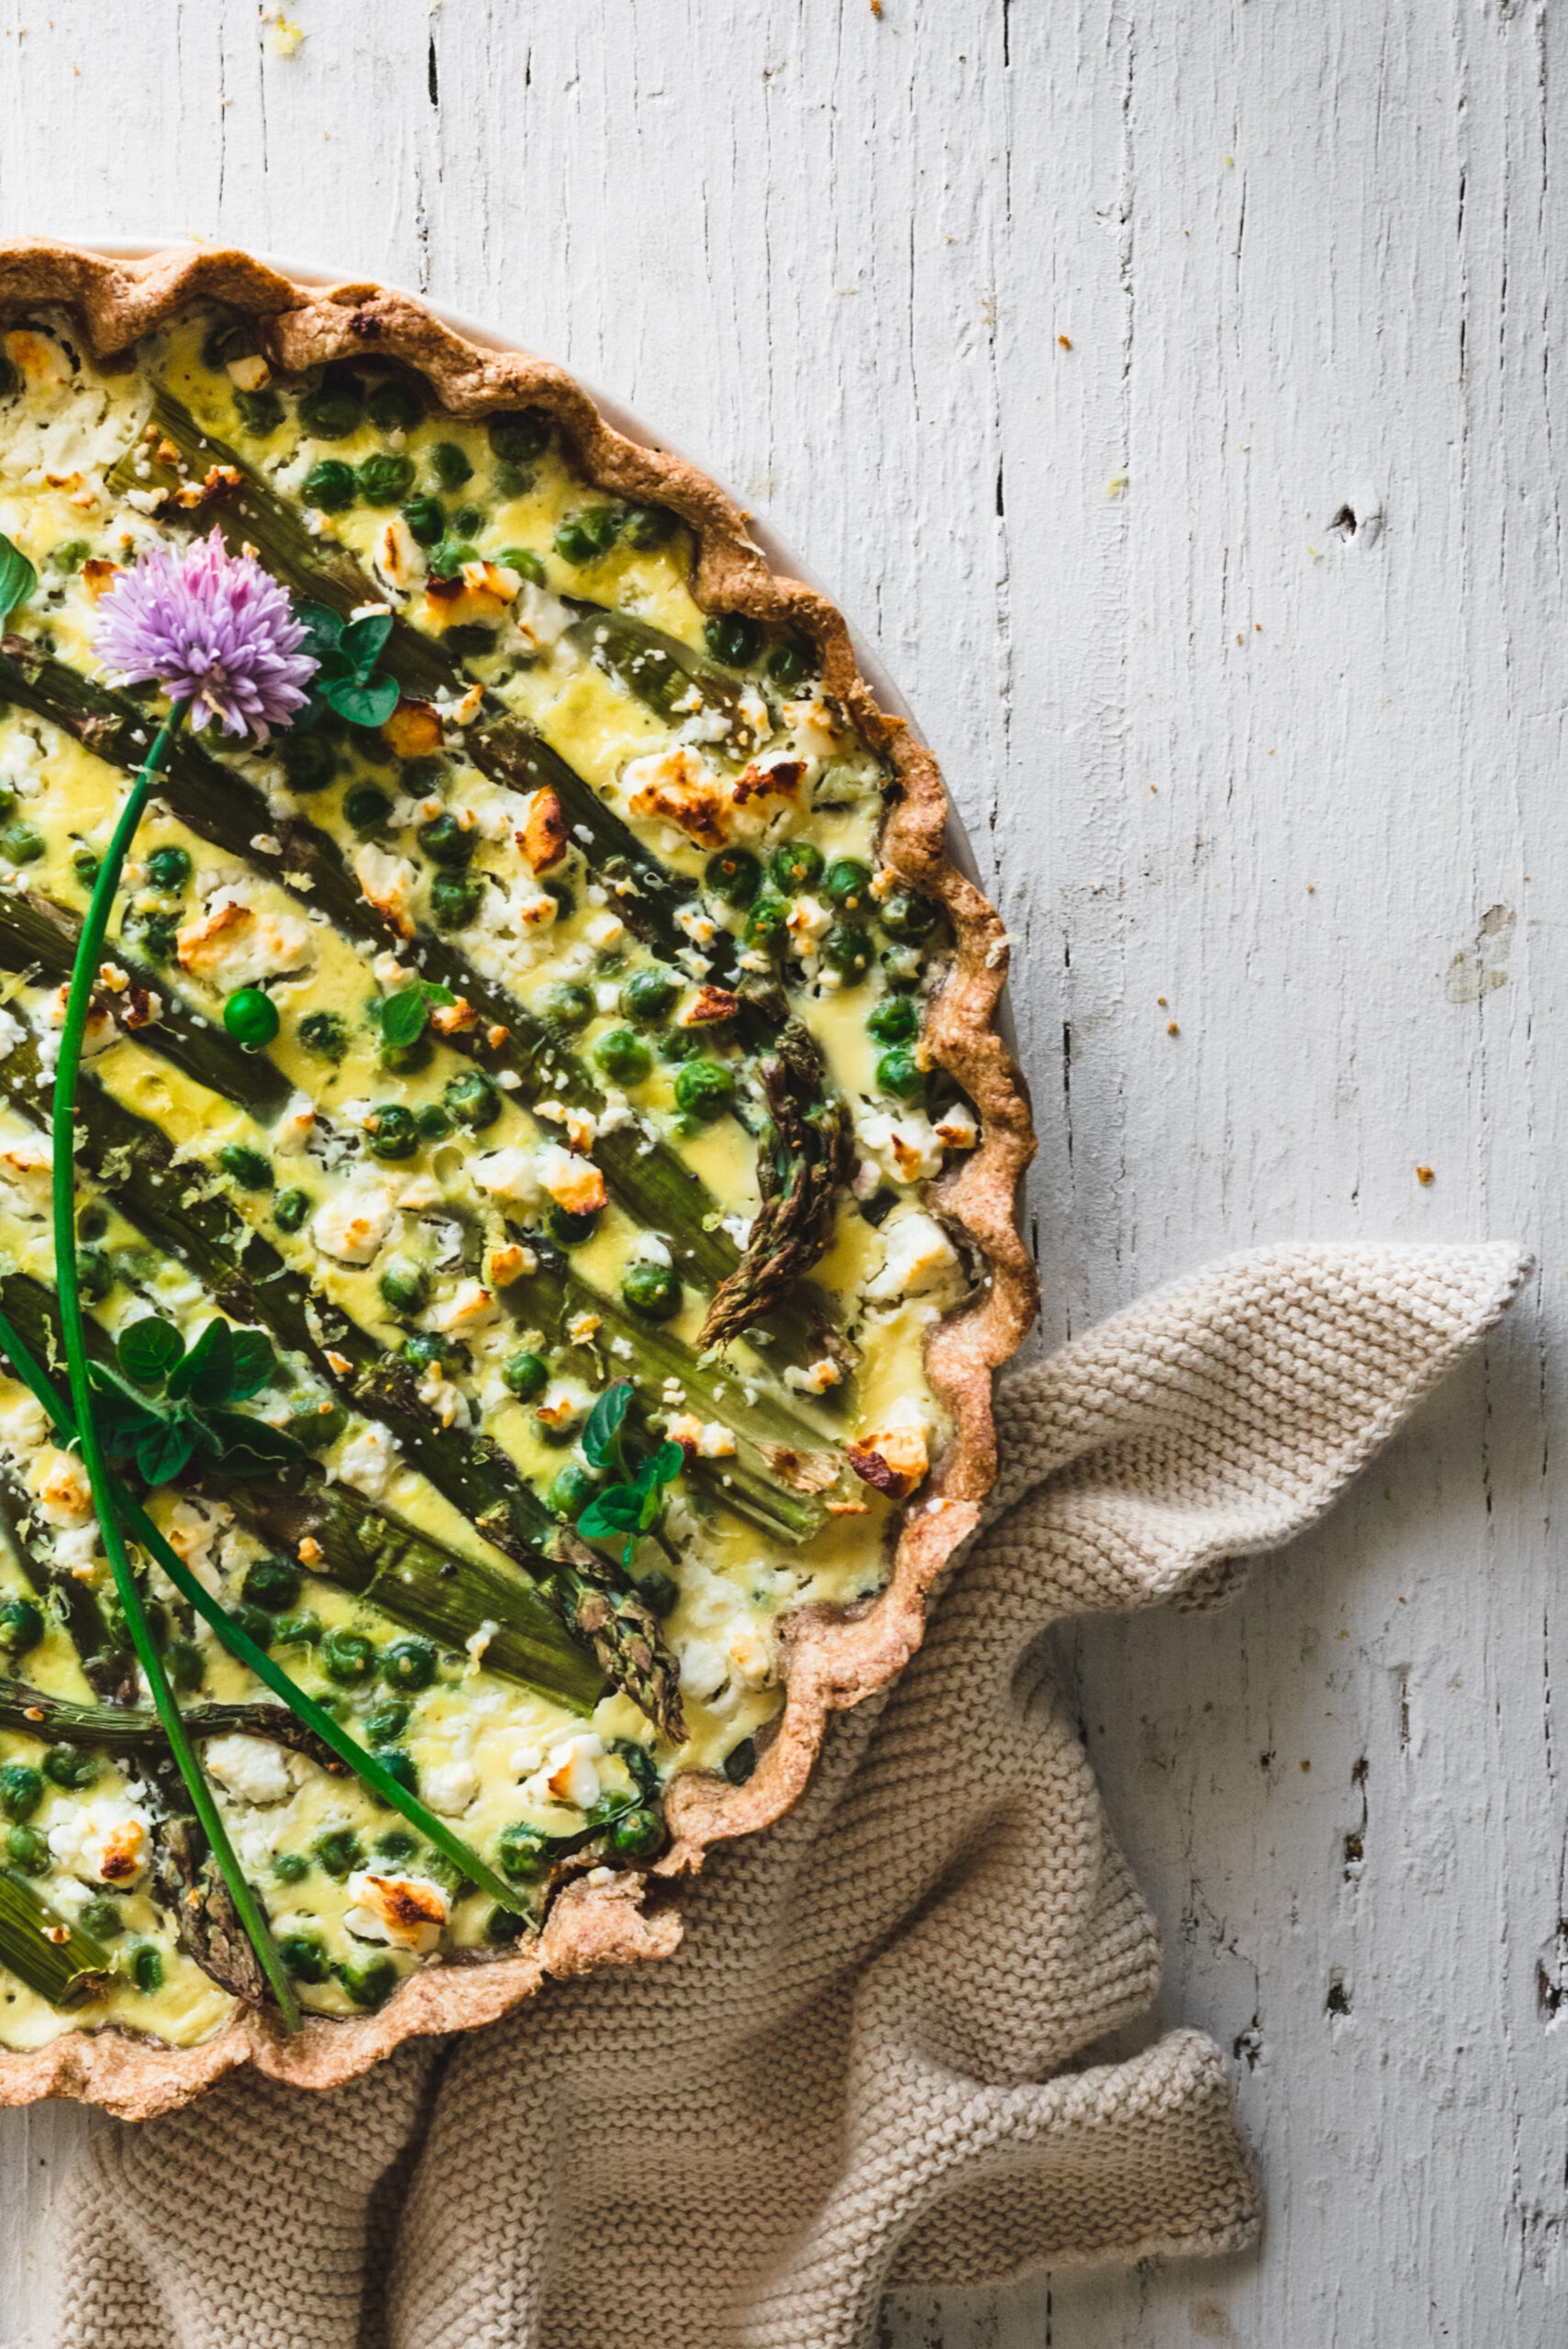 A delicious spring flavored quiche - food photography